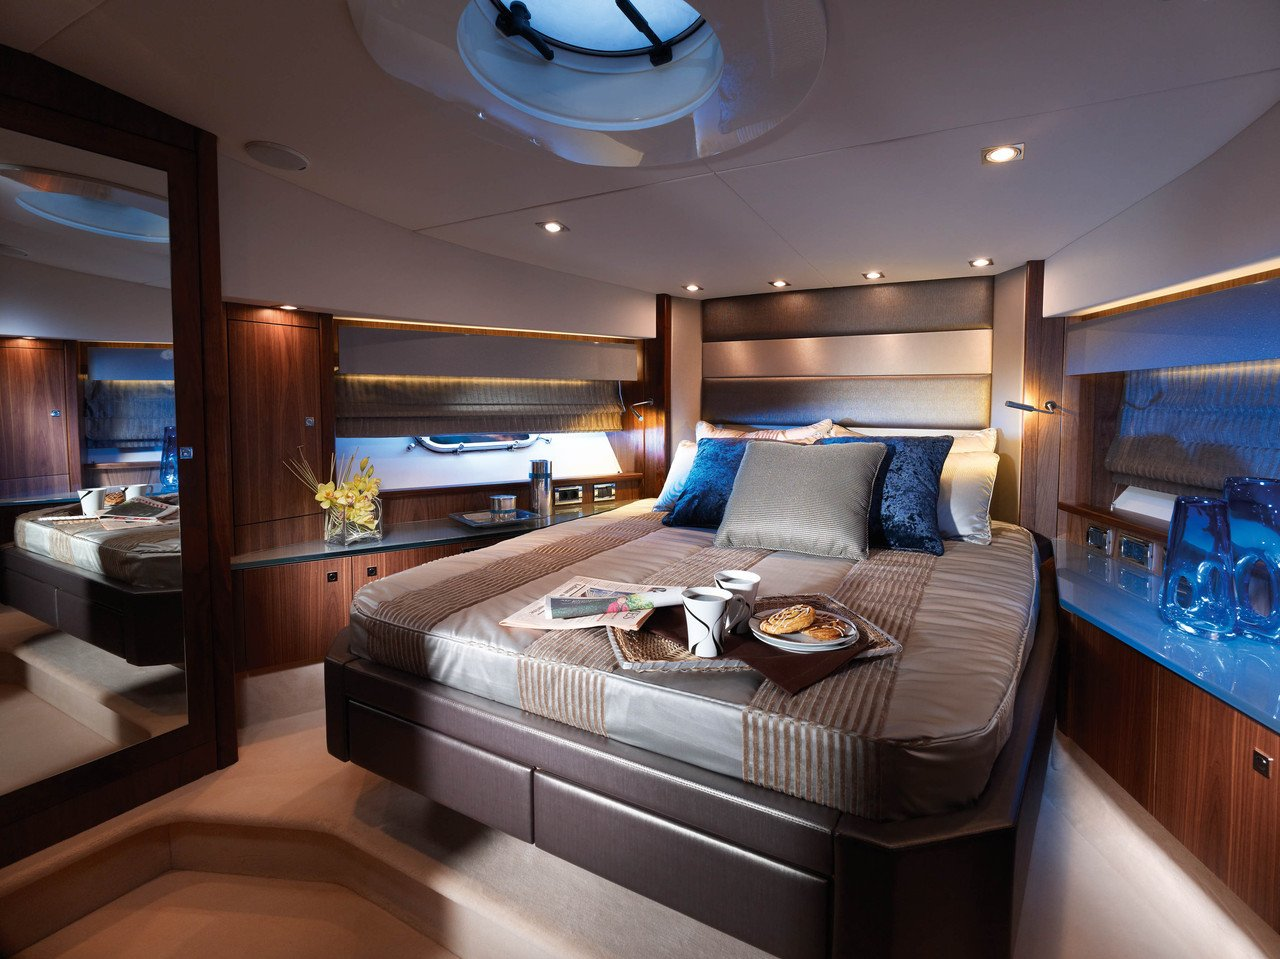 Bedroom Ideas HD Desktop Wallpaper and Best Backgrounds for your PC 1280x959